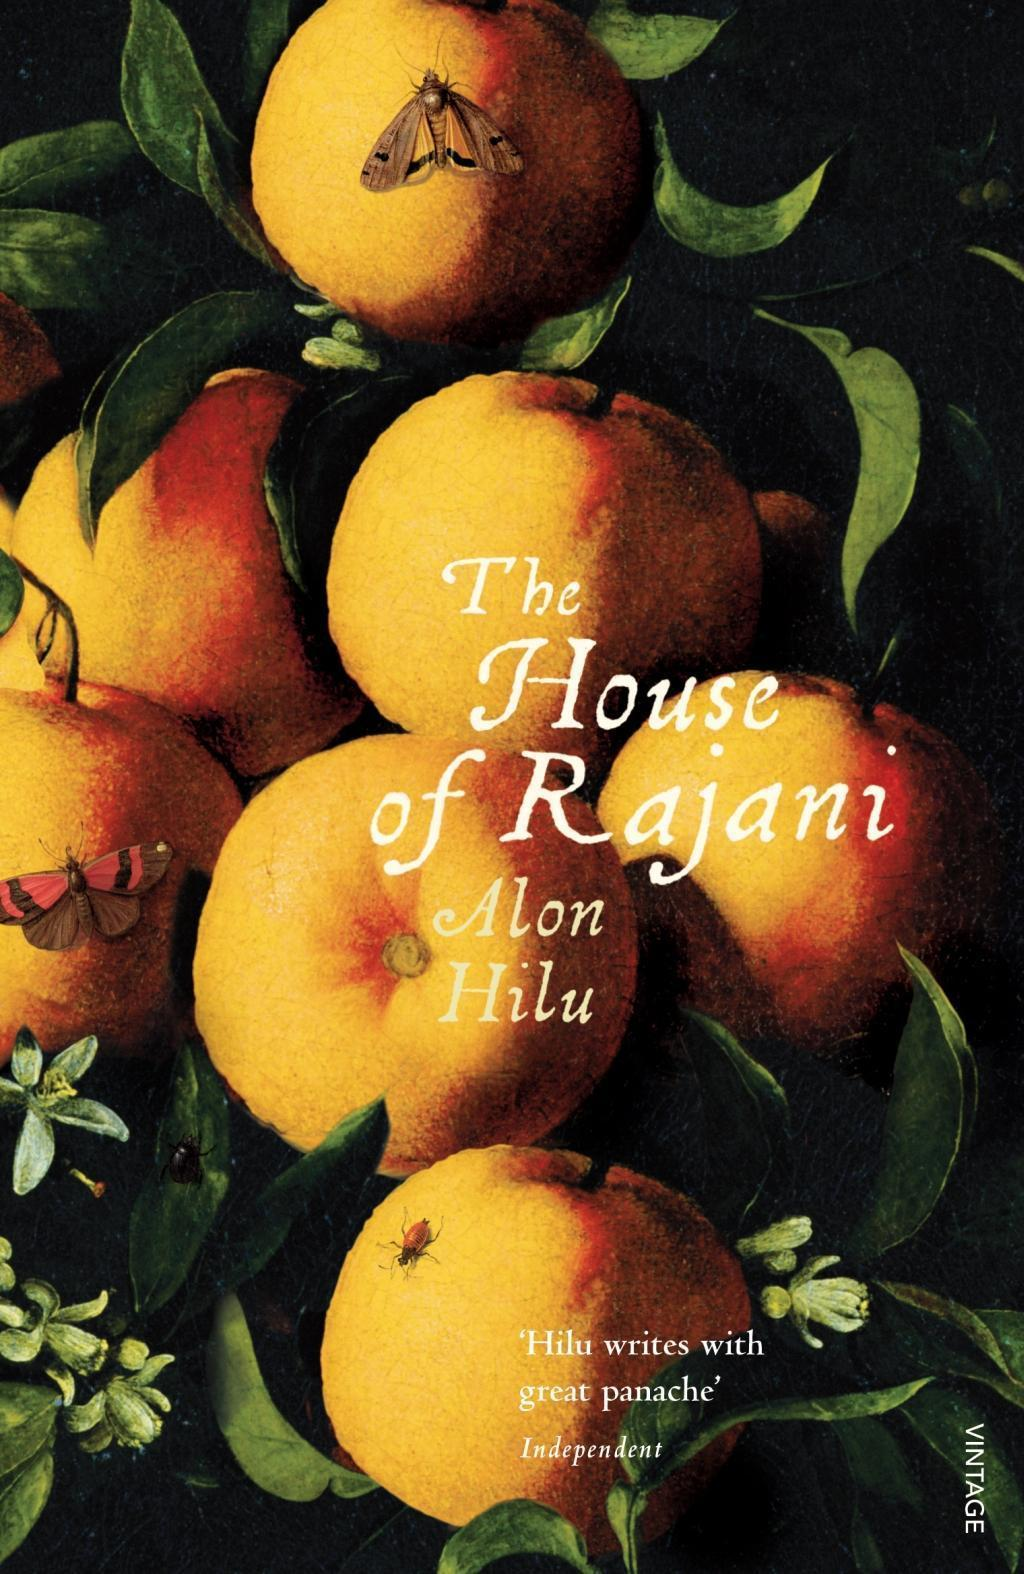 The House of Rajani